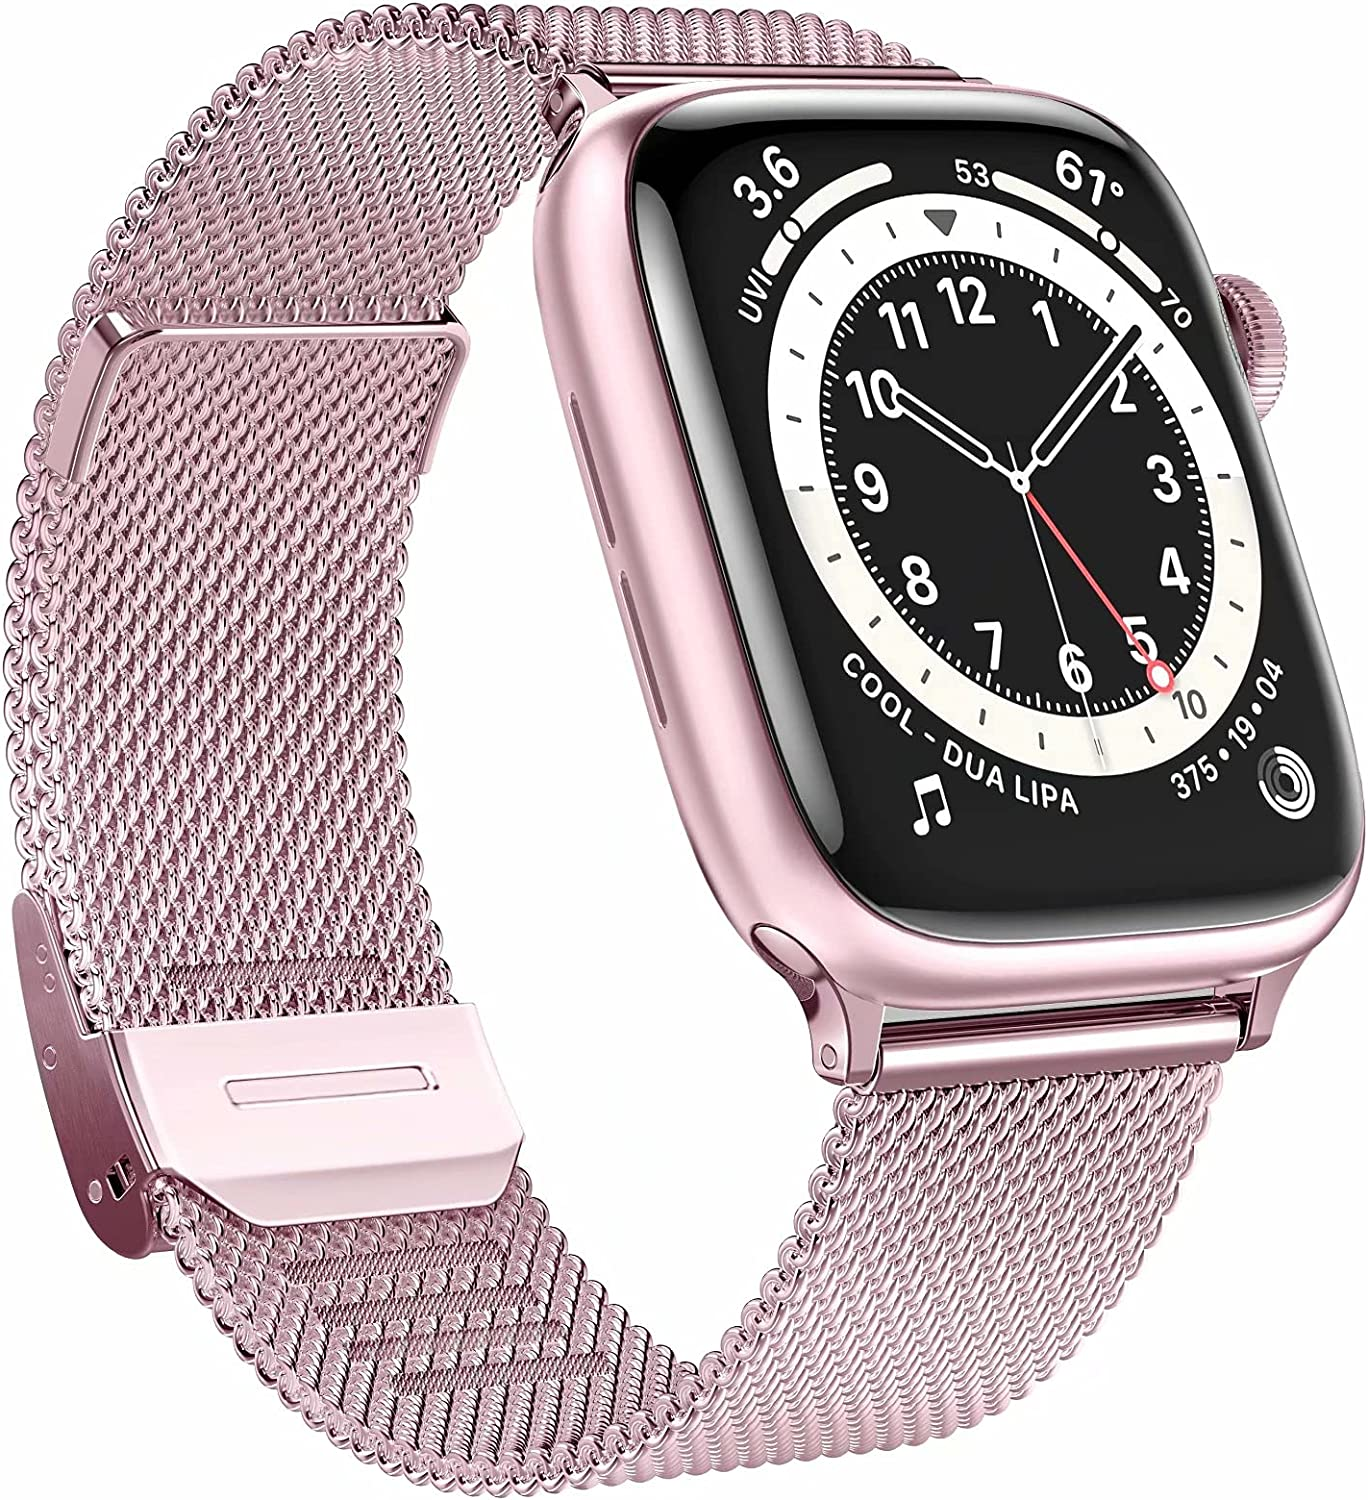 GBPOOT Bands Compatible with Apple Watch Bands 38mm 40mm 42mm 44mm,Clasp Stainless Steel Milanese Bands for iwatch Series 6/5/4/3/2/1/SE Men Women(Rose Gold,42/44mm)